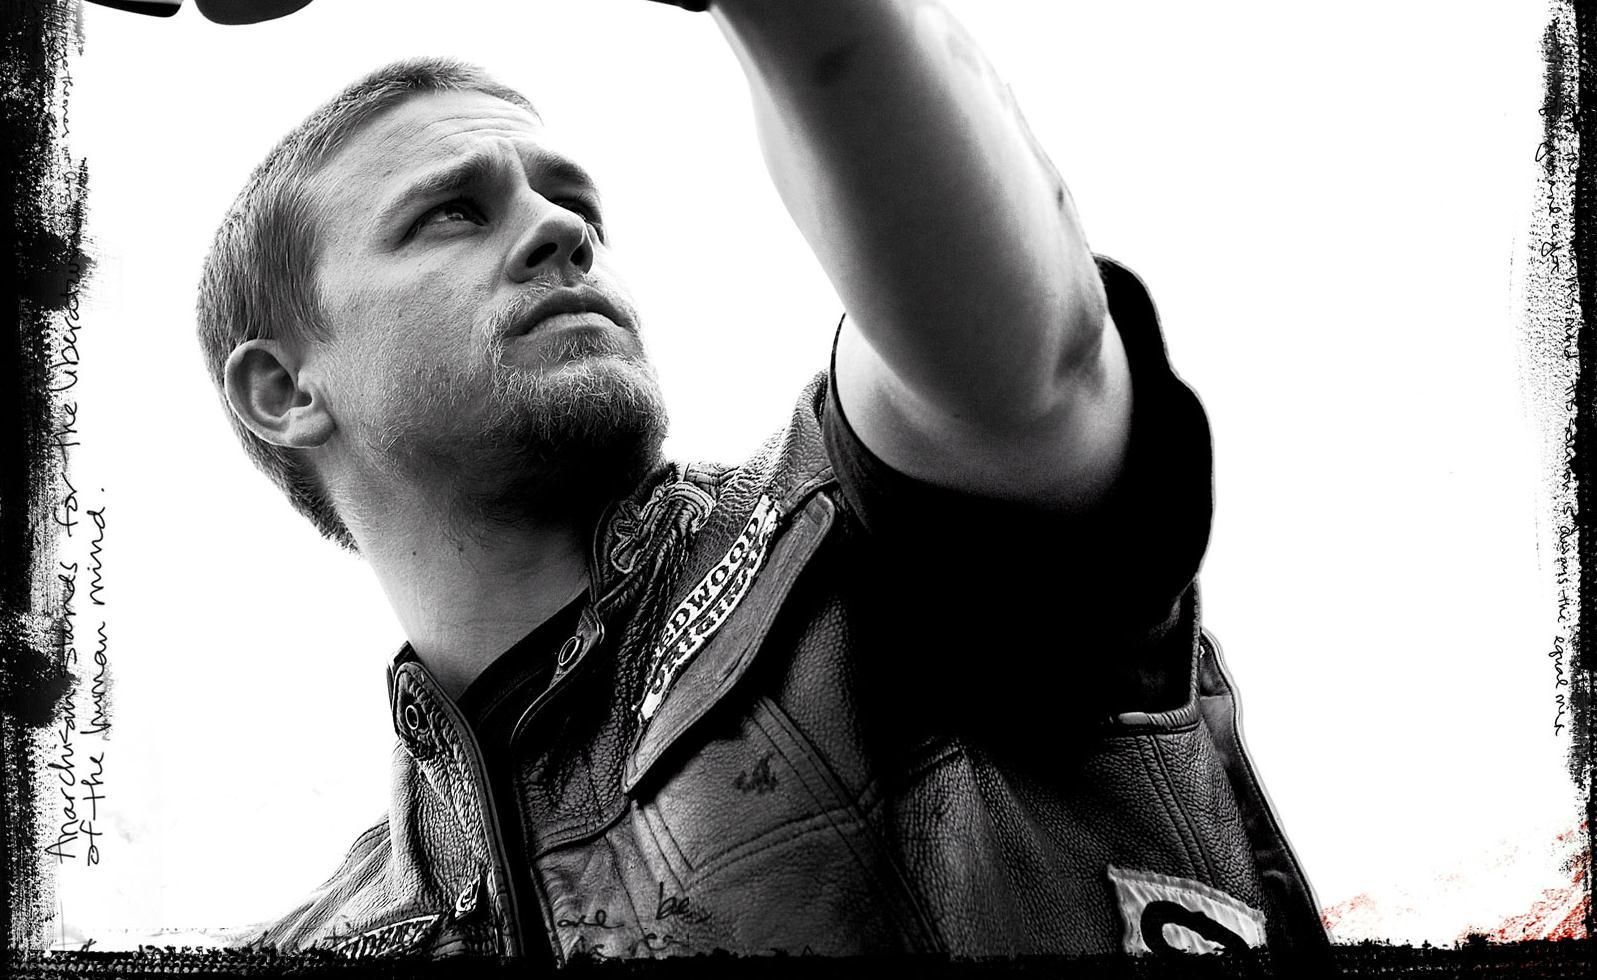 Charlie Hunnam Soa: Biker Blog: Season 5 Sneak Peek